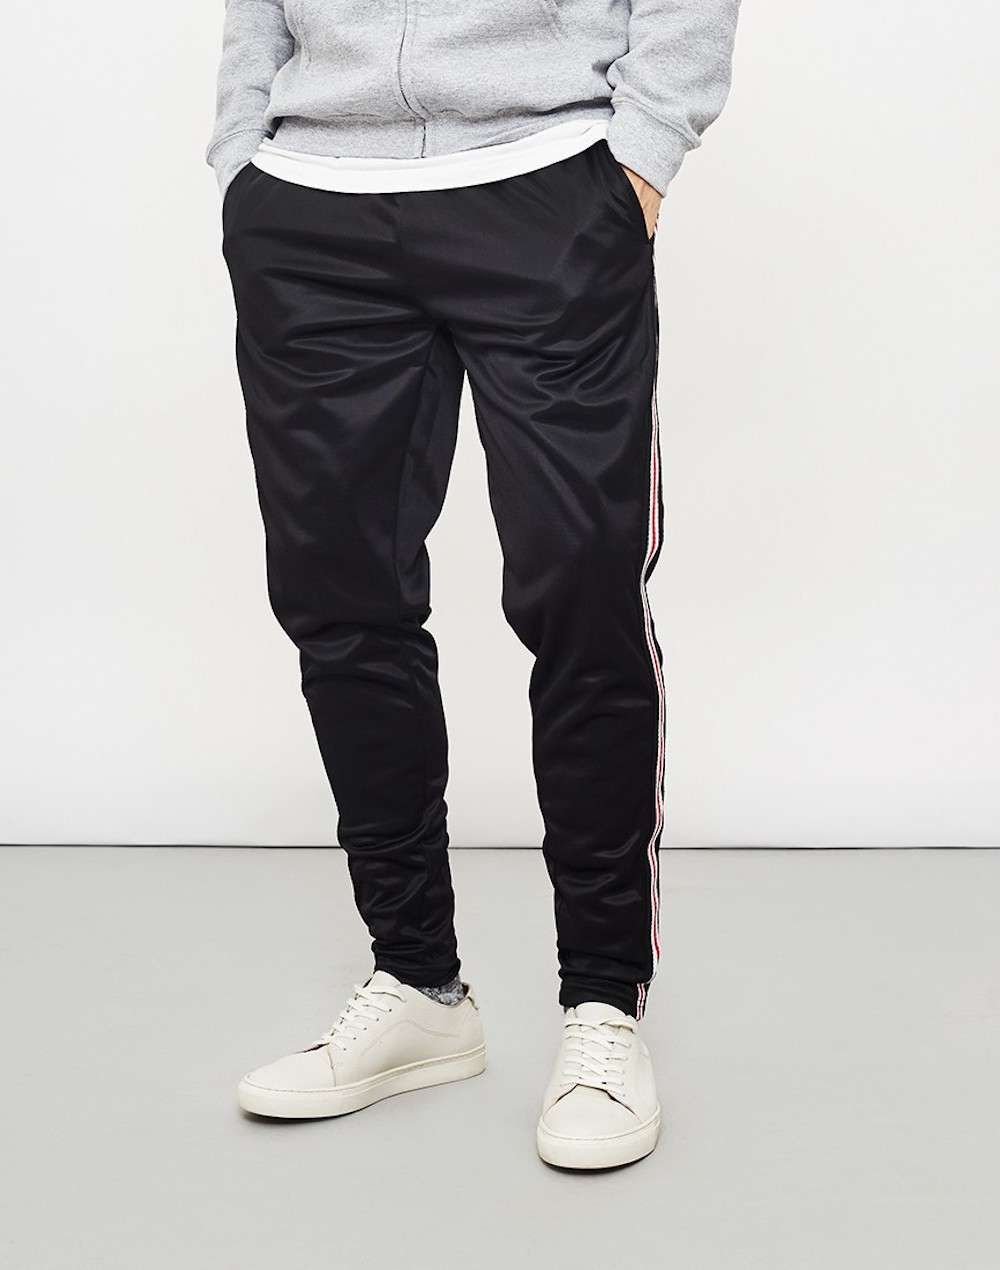 the idle man black joggers for men